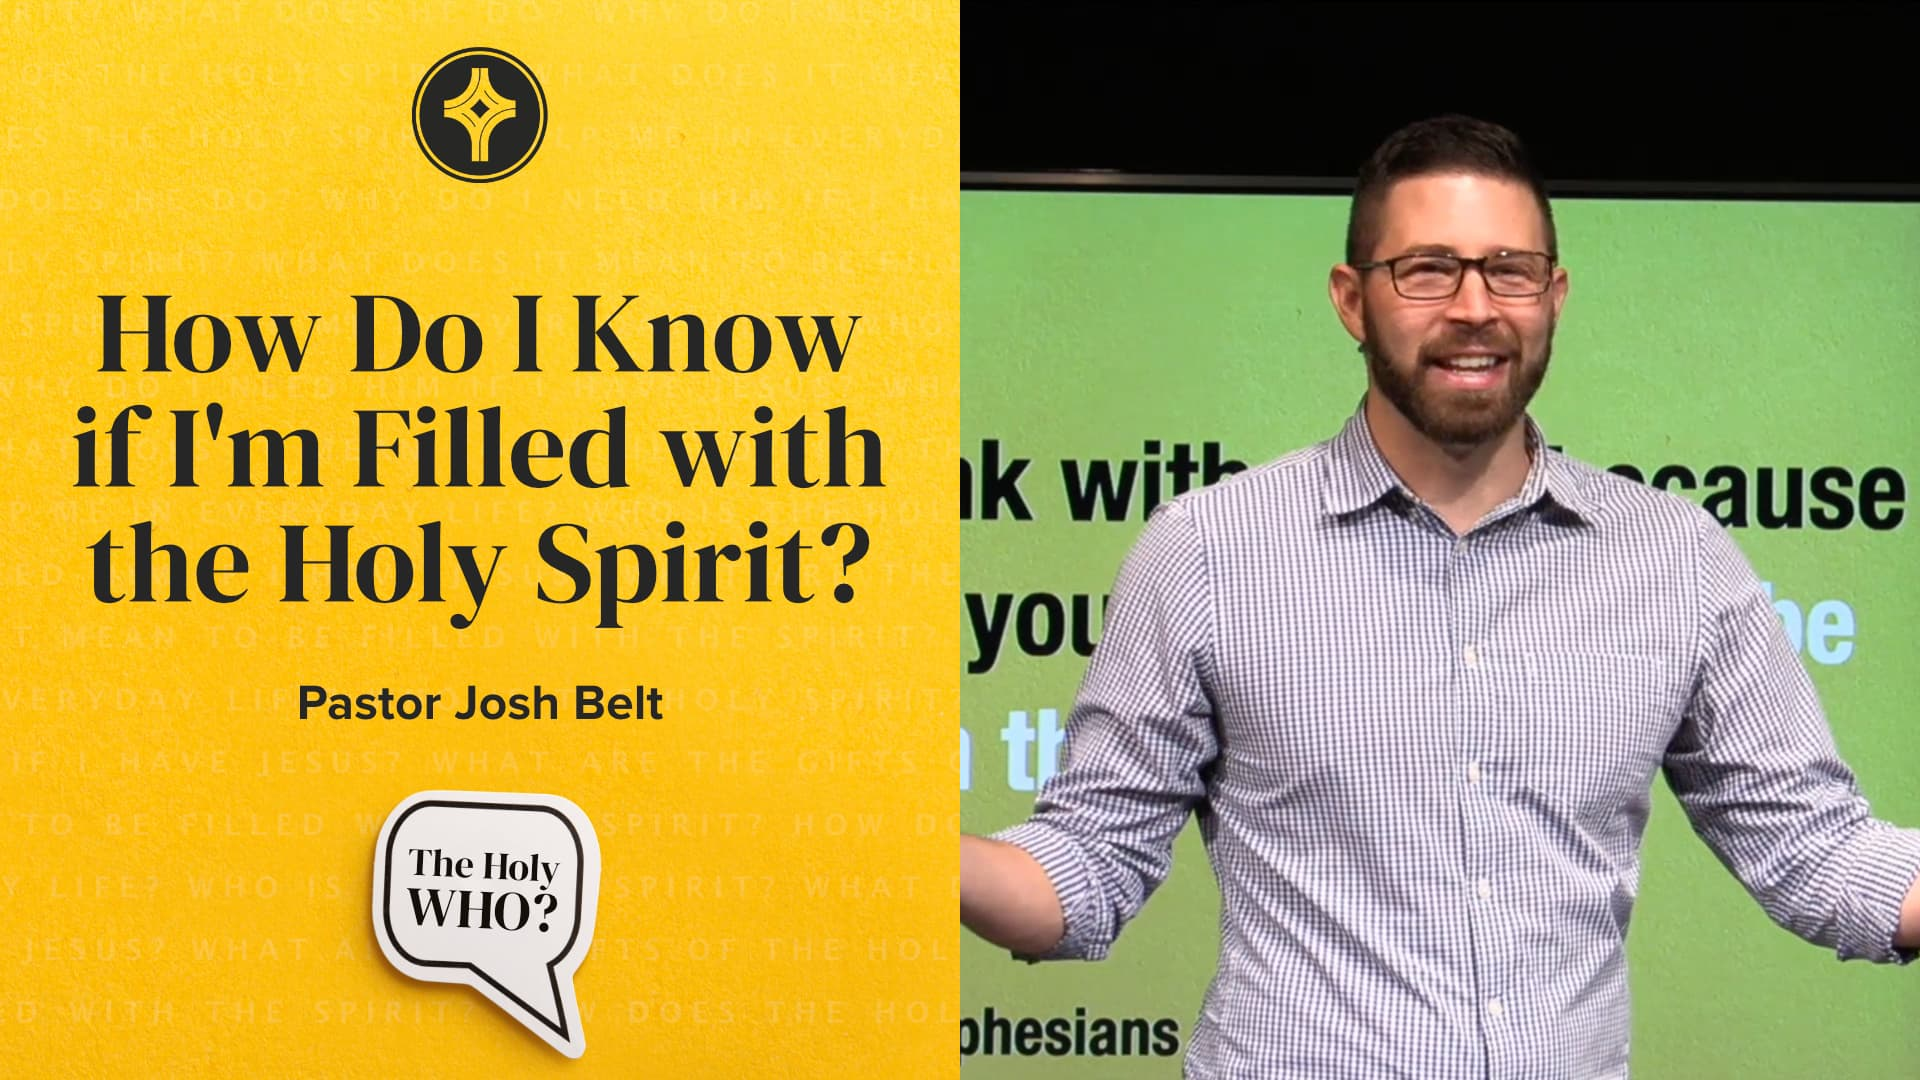 How Do I Know if I'm Filled With the Holy Spirit?